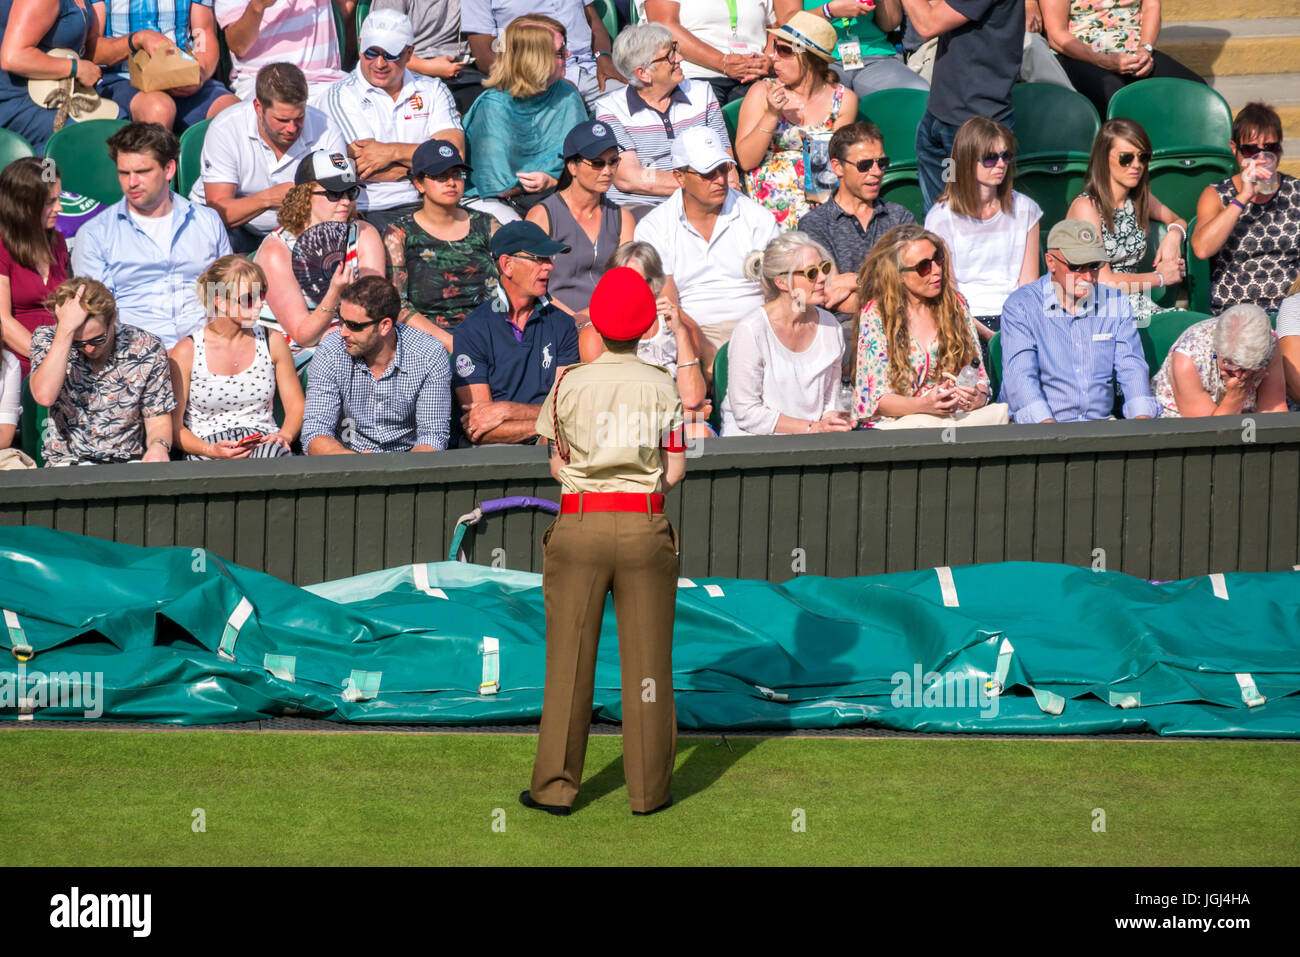 Spectators on Centre Court Wimbledon tennis championship 2017, London, England UK with armed forces standing to - Stock Image